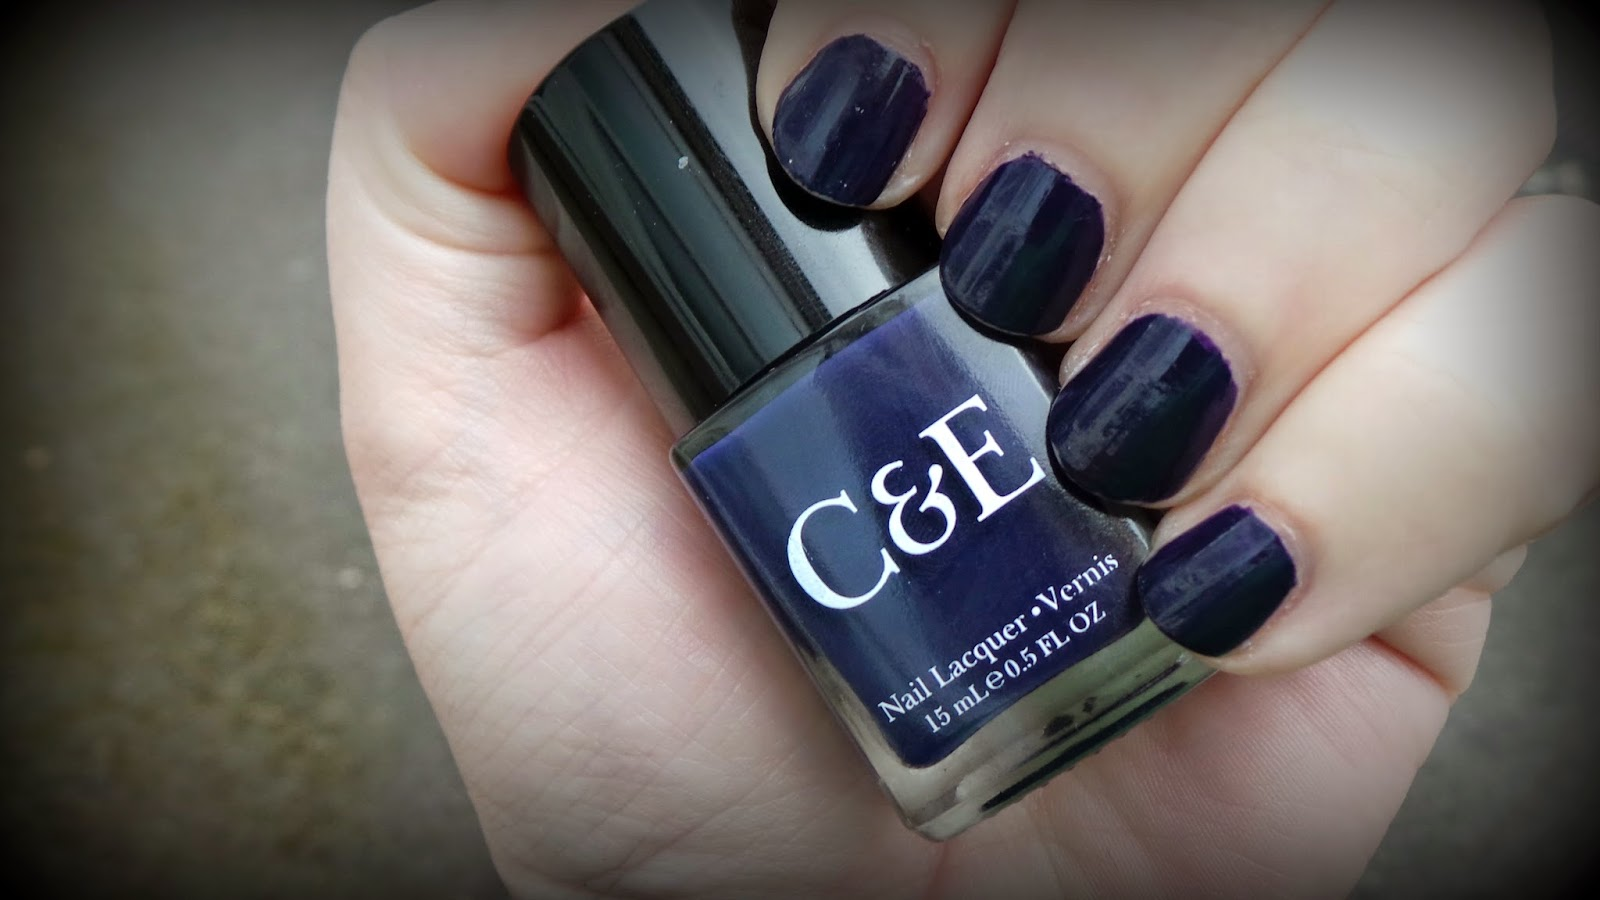 Dark Blue nail polish